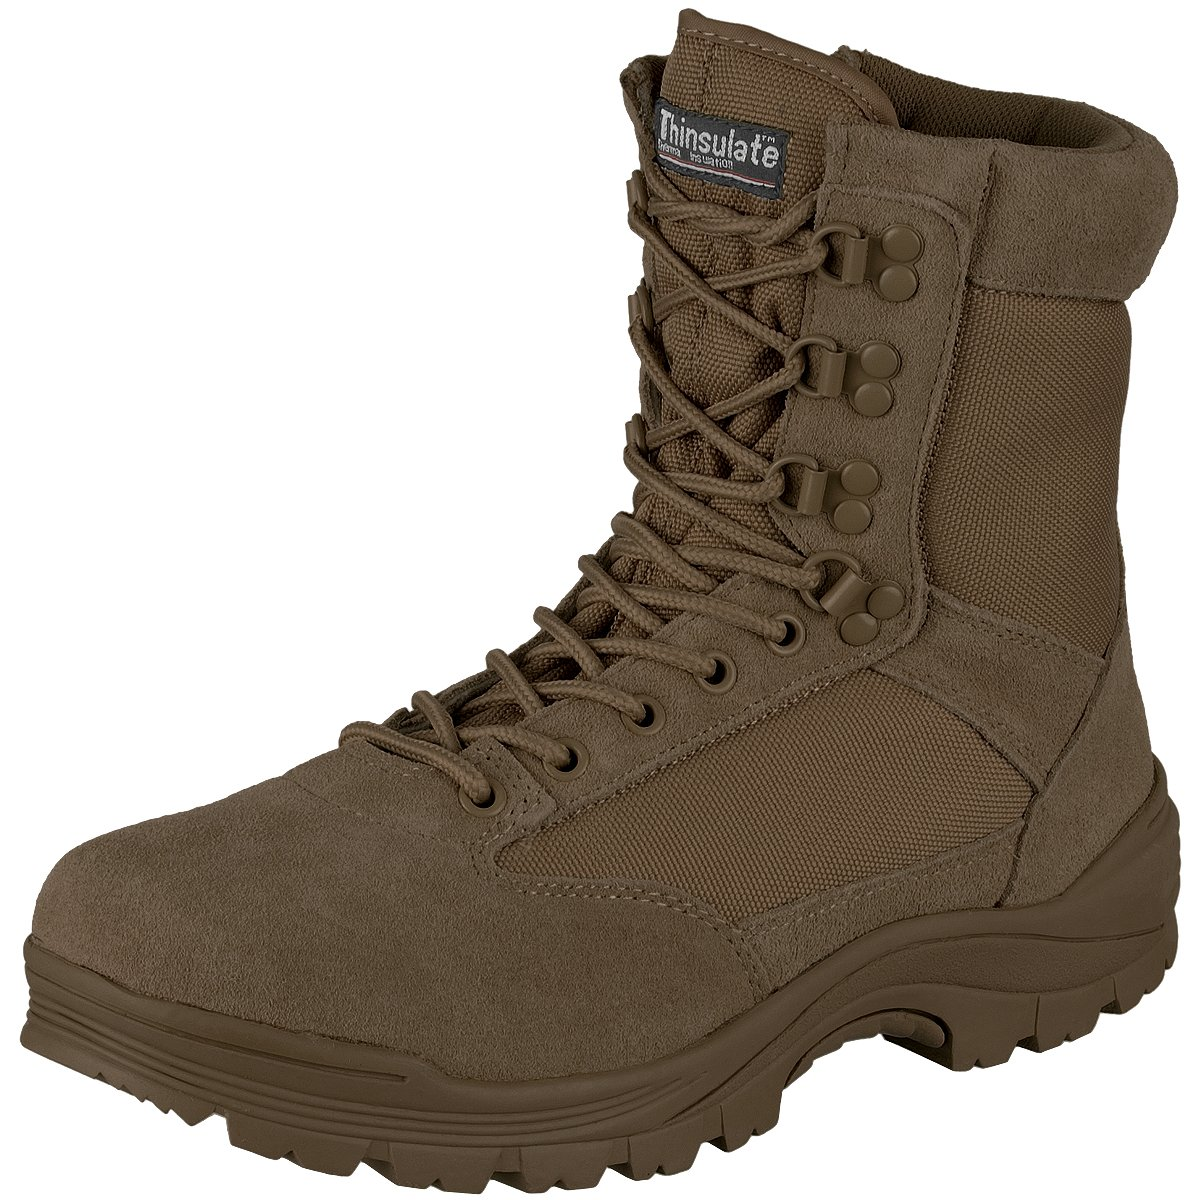 Mil-Tec Men's Tactical Zipper Boots Brown Size 9 UK / 10 US